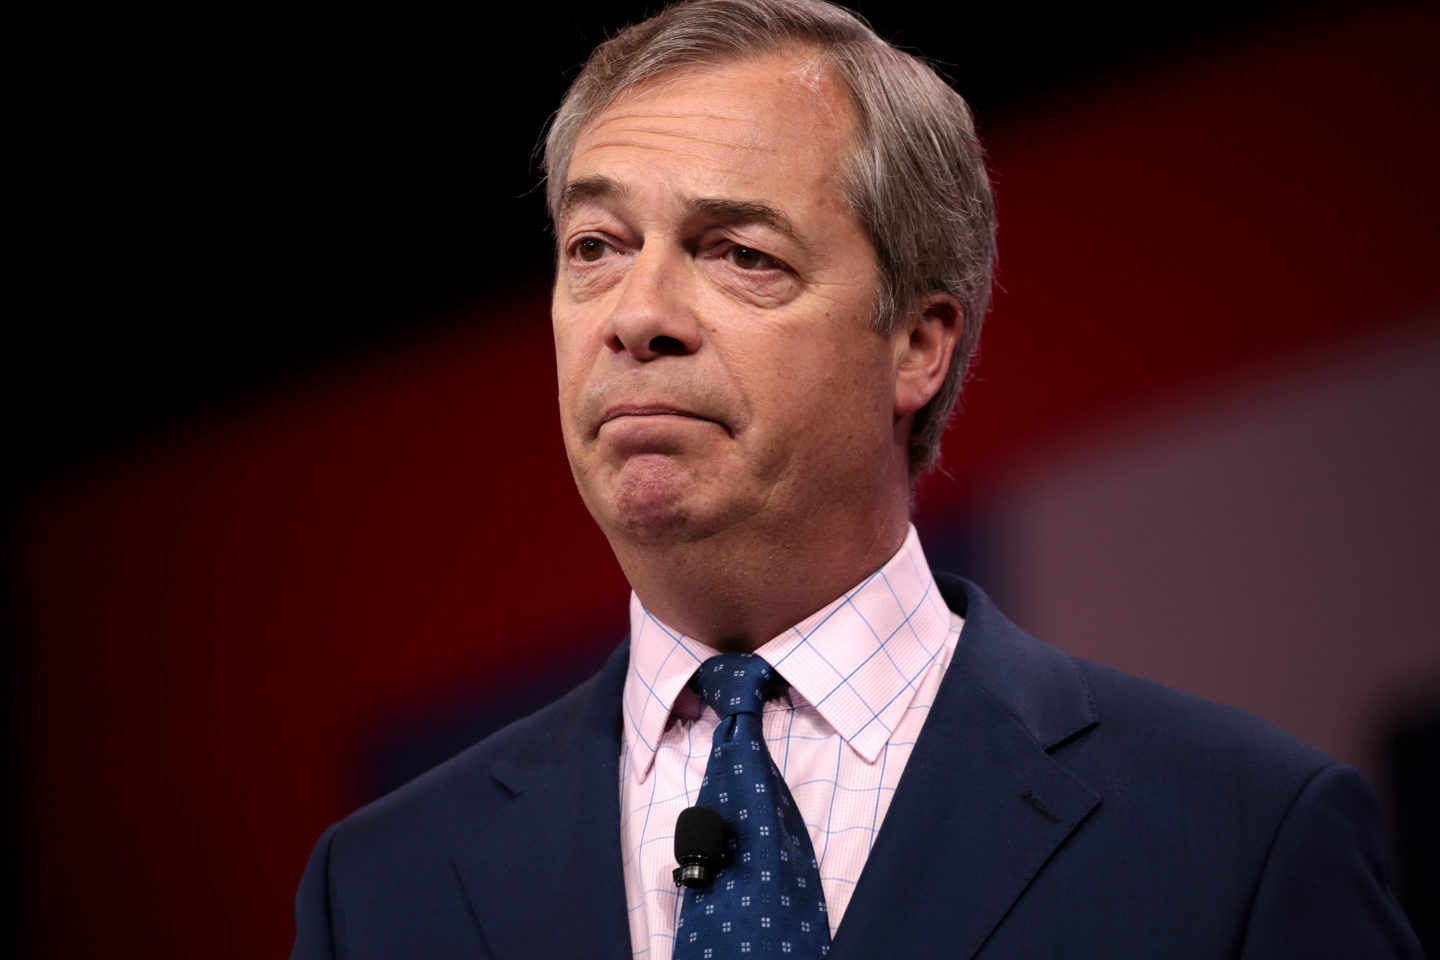 Fact check: Alleged Nigel Farage tweet about Scots 'coming to heel' is fake 6